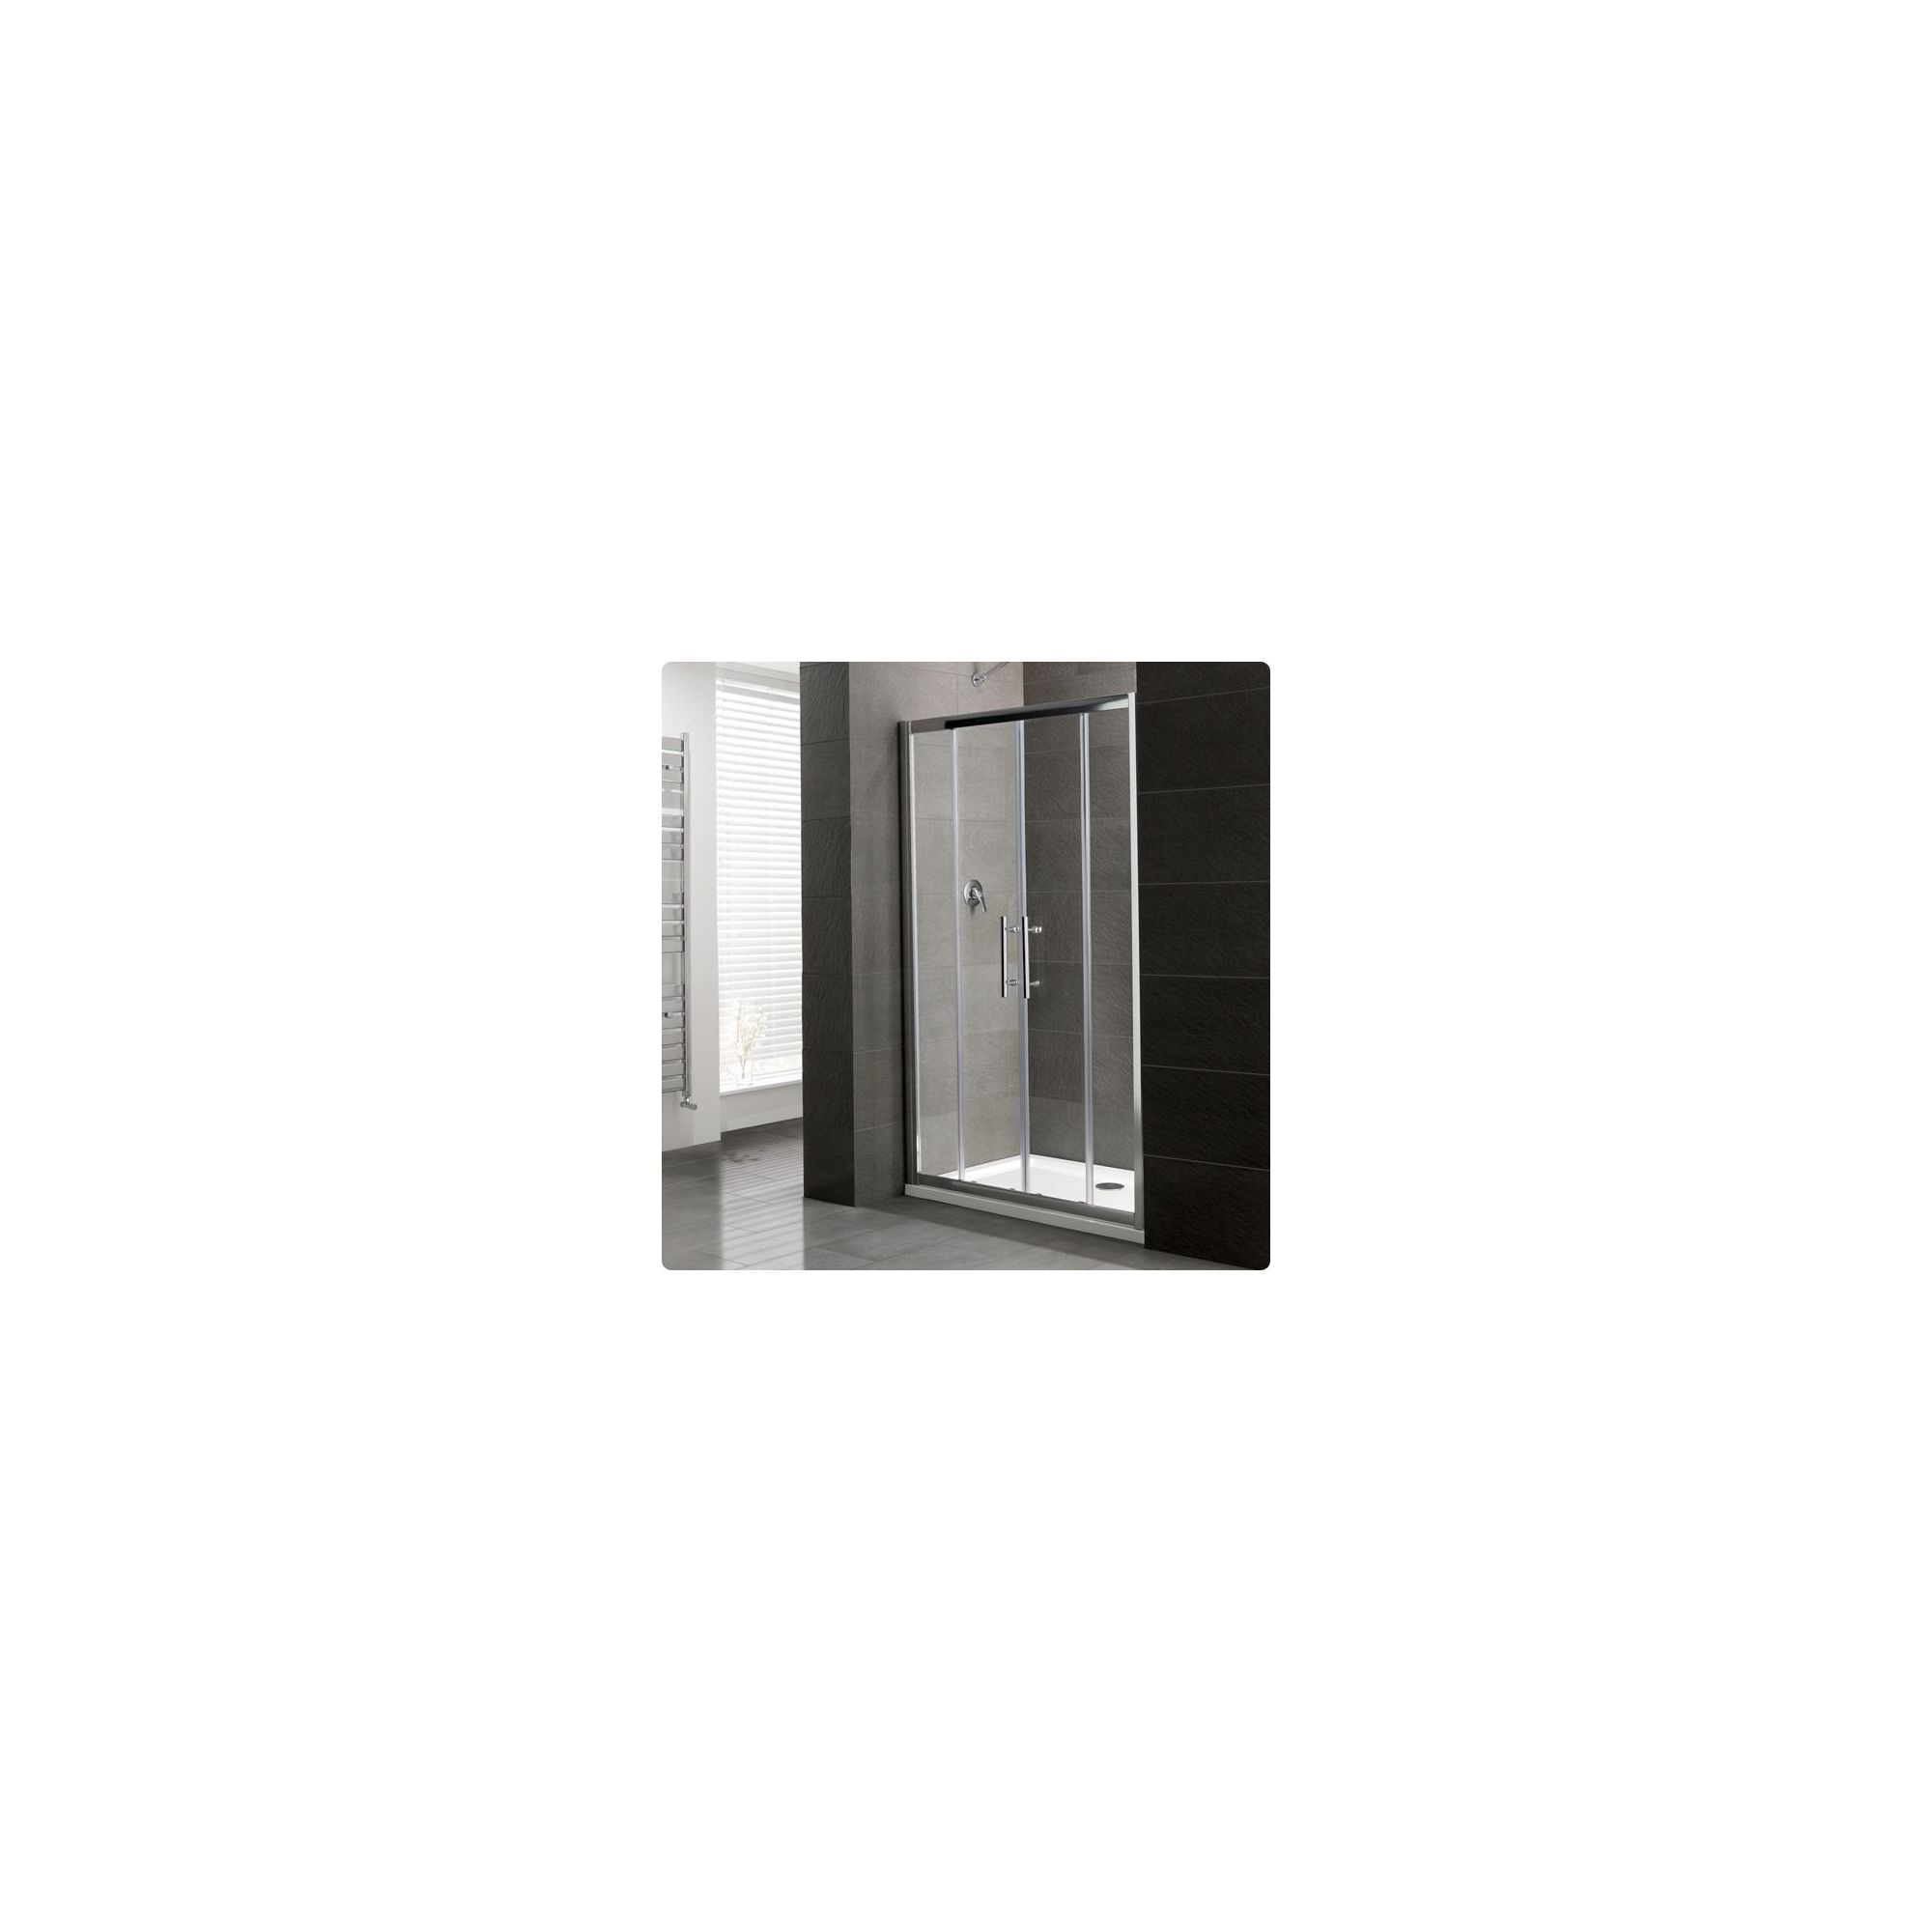 Duchy Select Silver Double Sliding Door Shower Enclosure, 1500mm x 900mm, Standard Tray, 6mm Glass at Tesco Direct